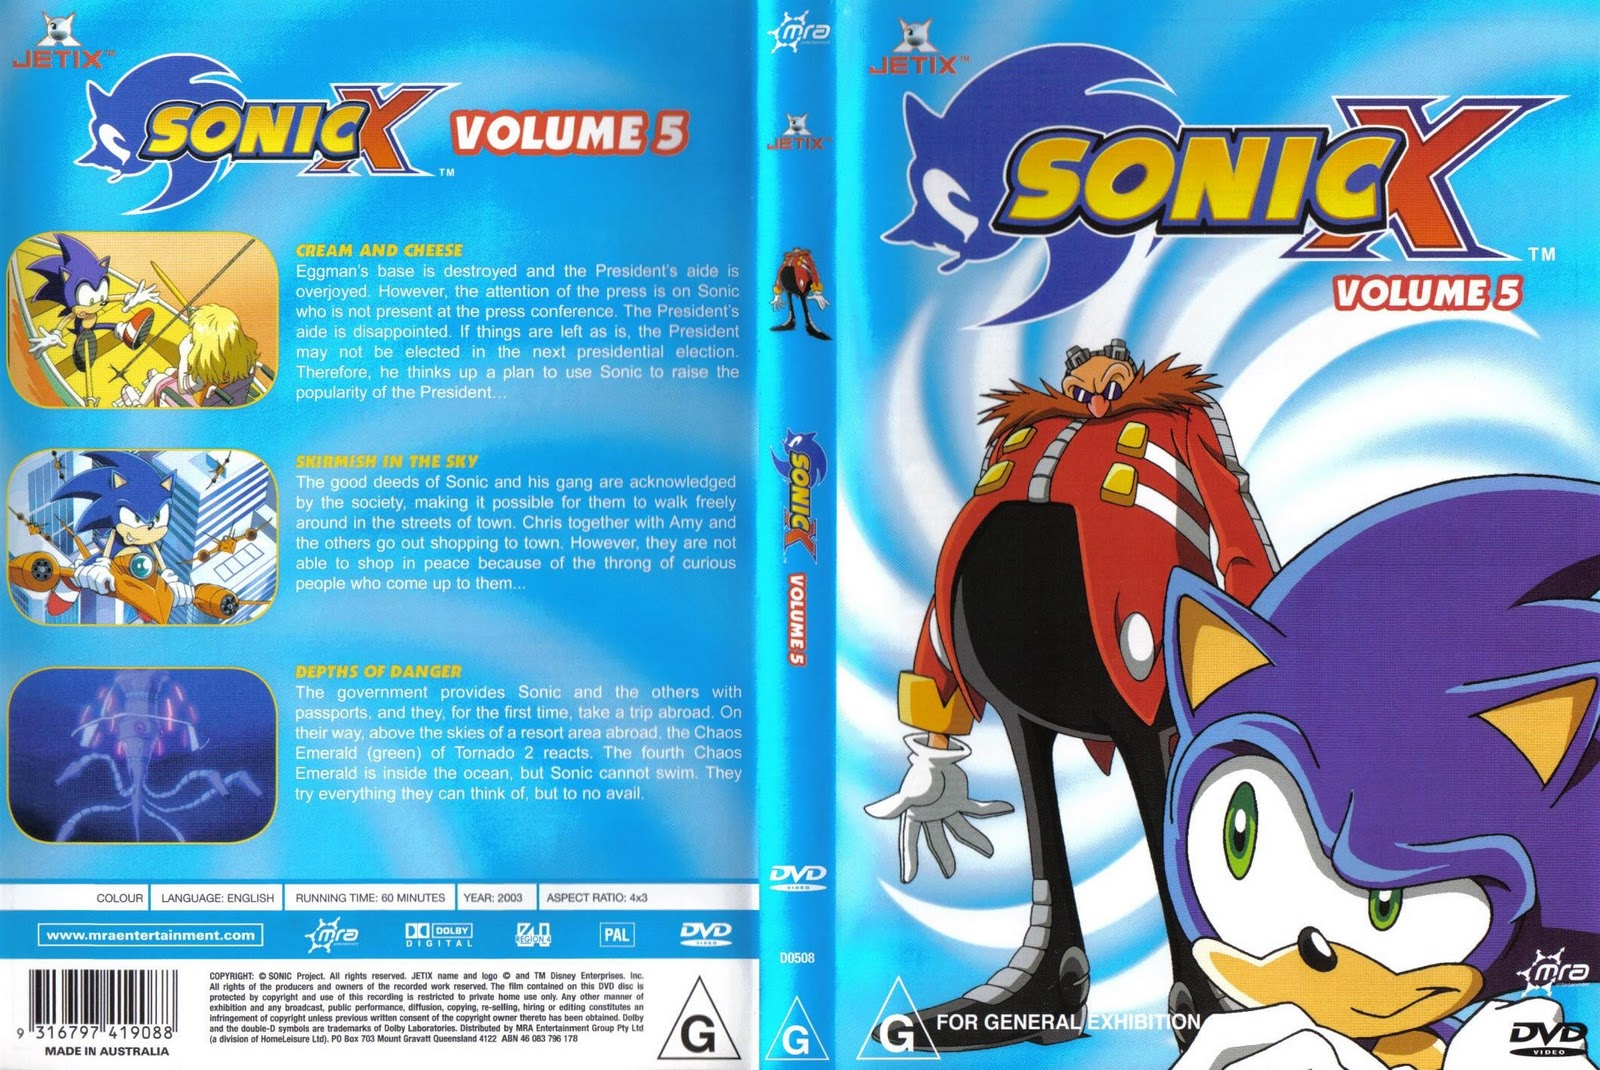 Fotos Do Sonic X for image - sonic x volume 5 aus cover | sonic news network